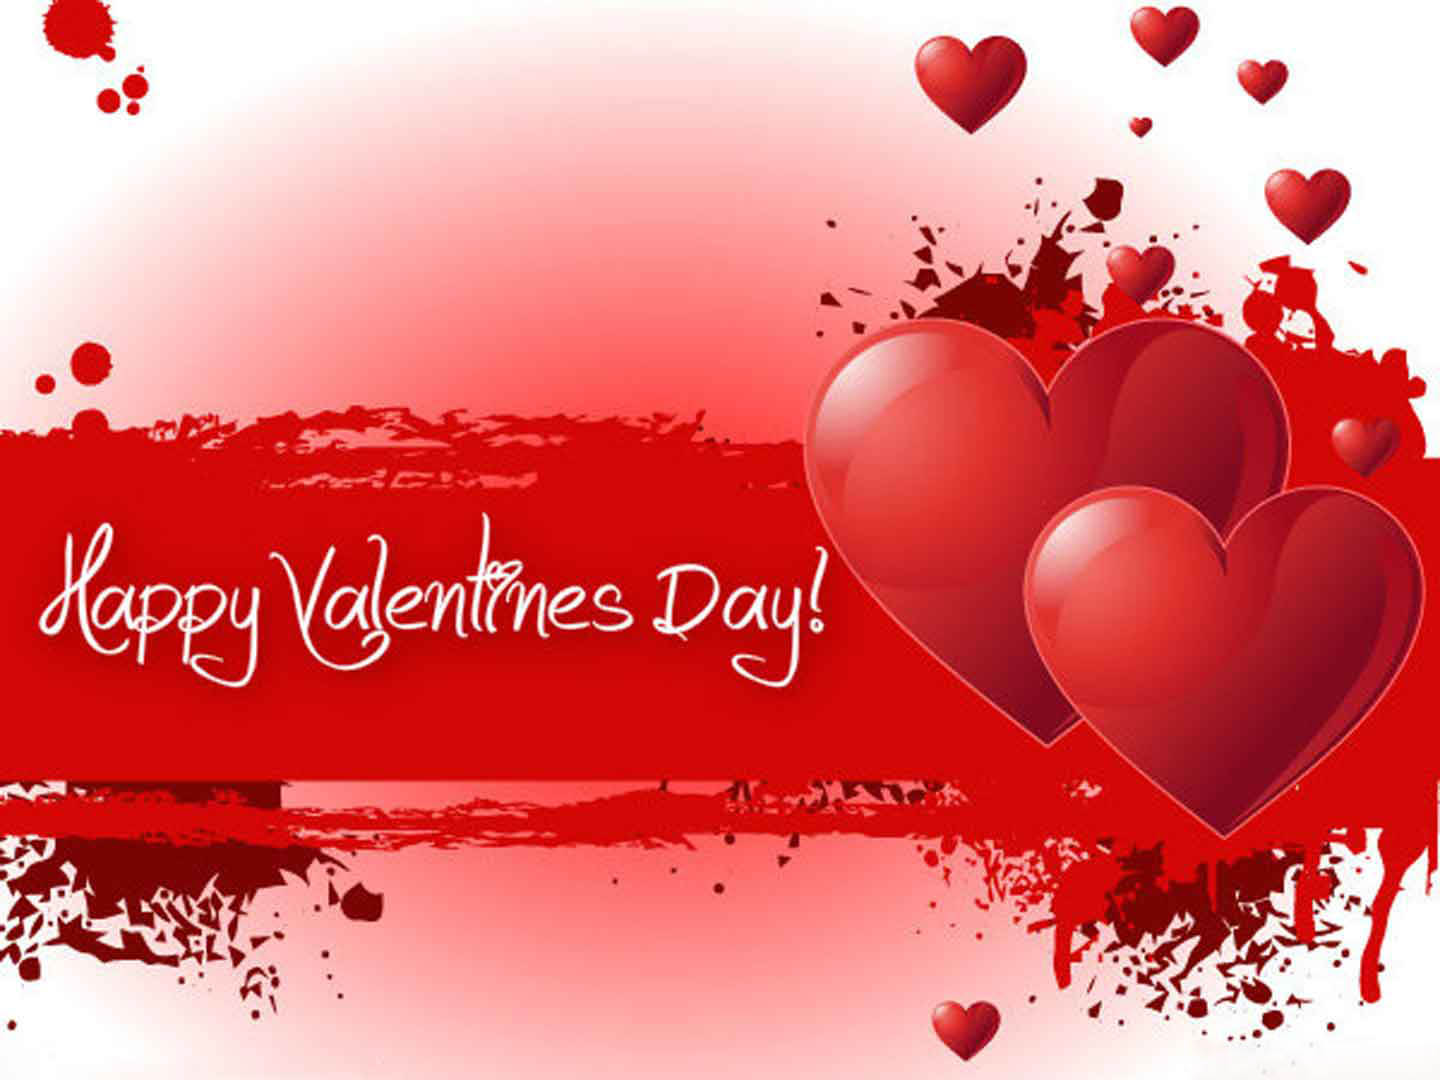 happy valentines day love hearts cute hd wallpaper